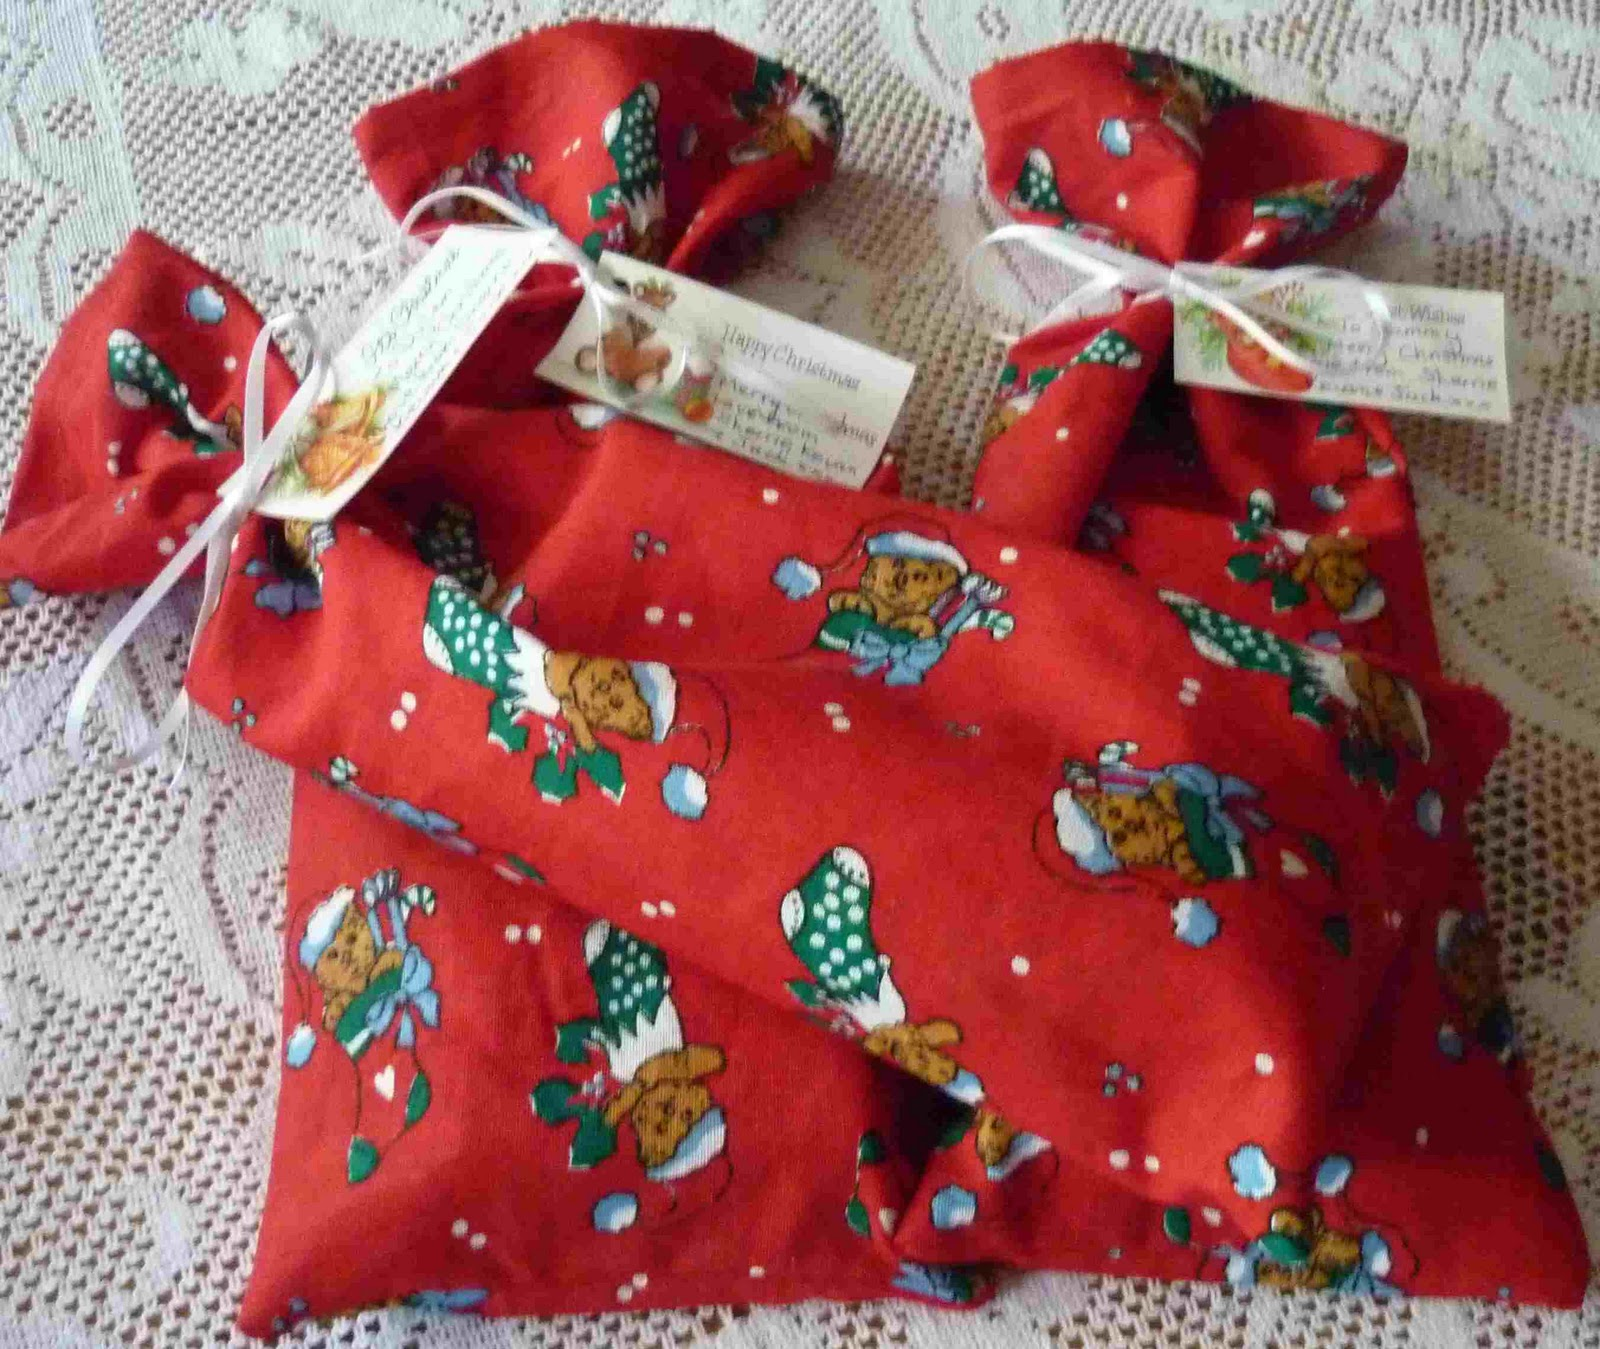 Simpleliving Make Fabric Bags For Christmas Gifts